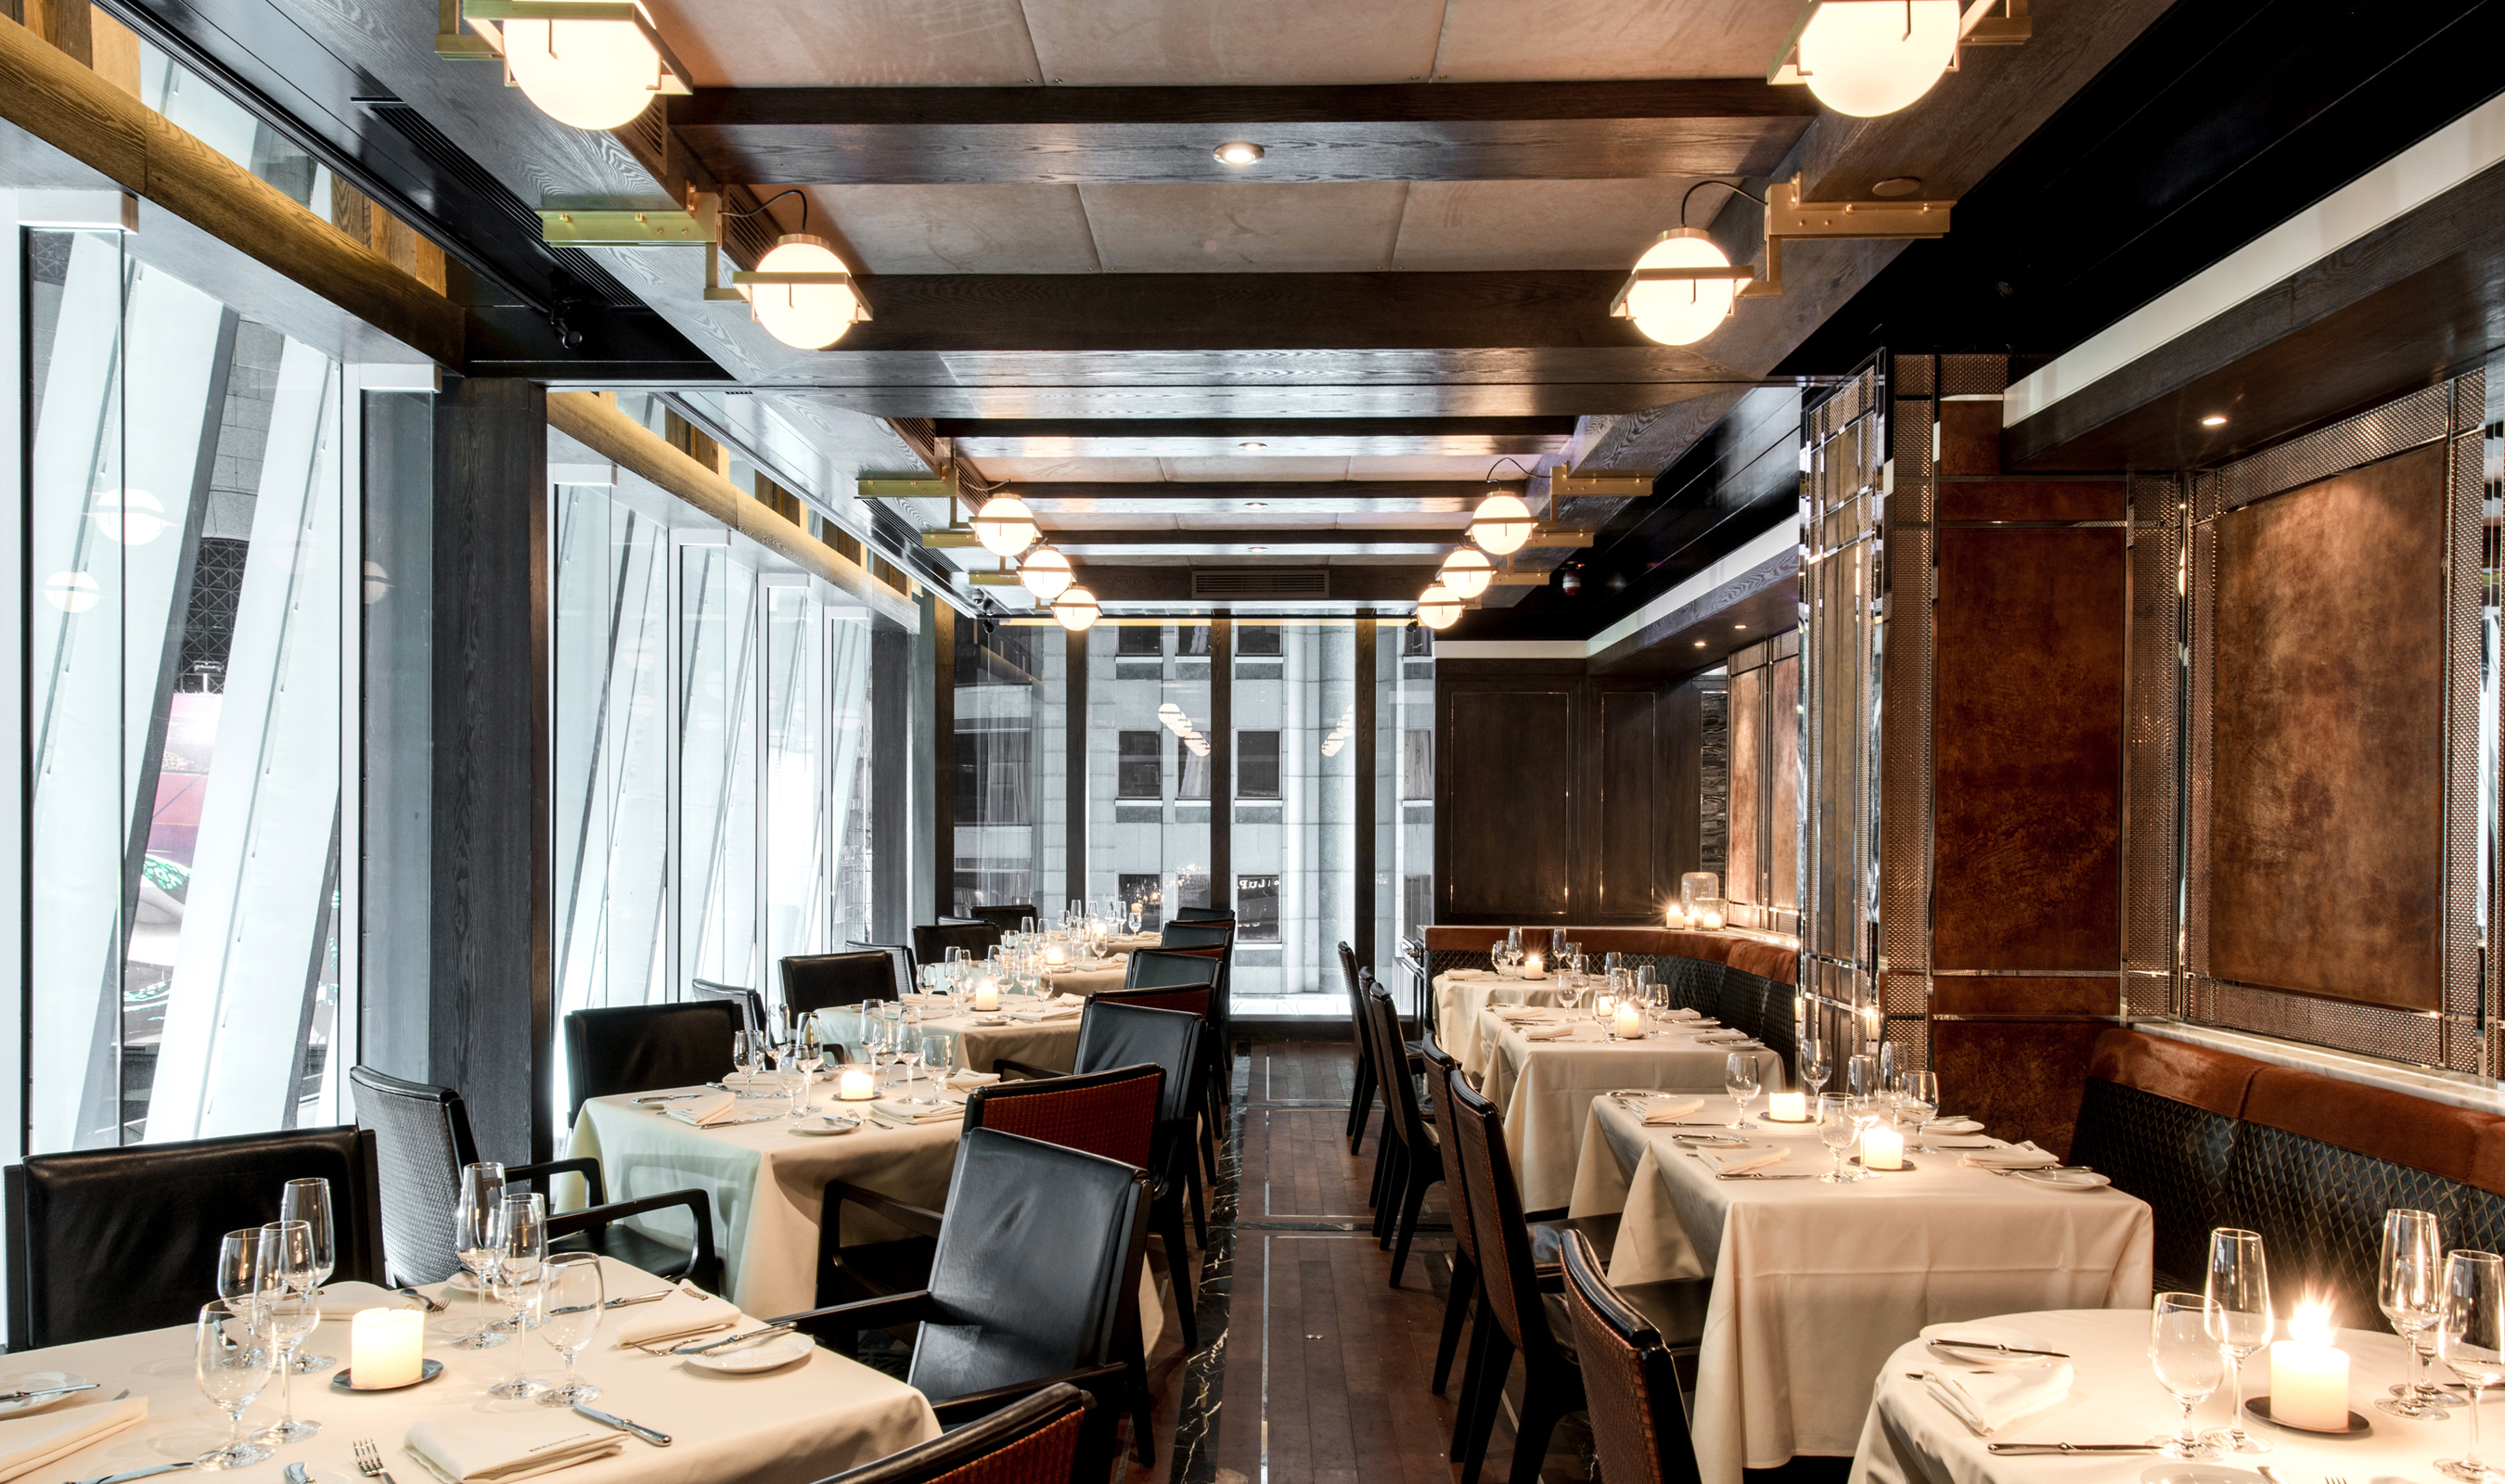 Banker Wire mesh was used in the restaurant's wine cellar, dining room and private dining area as a background accent for stone, metal and leather paneling.